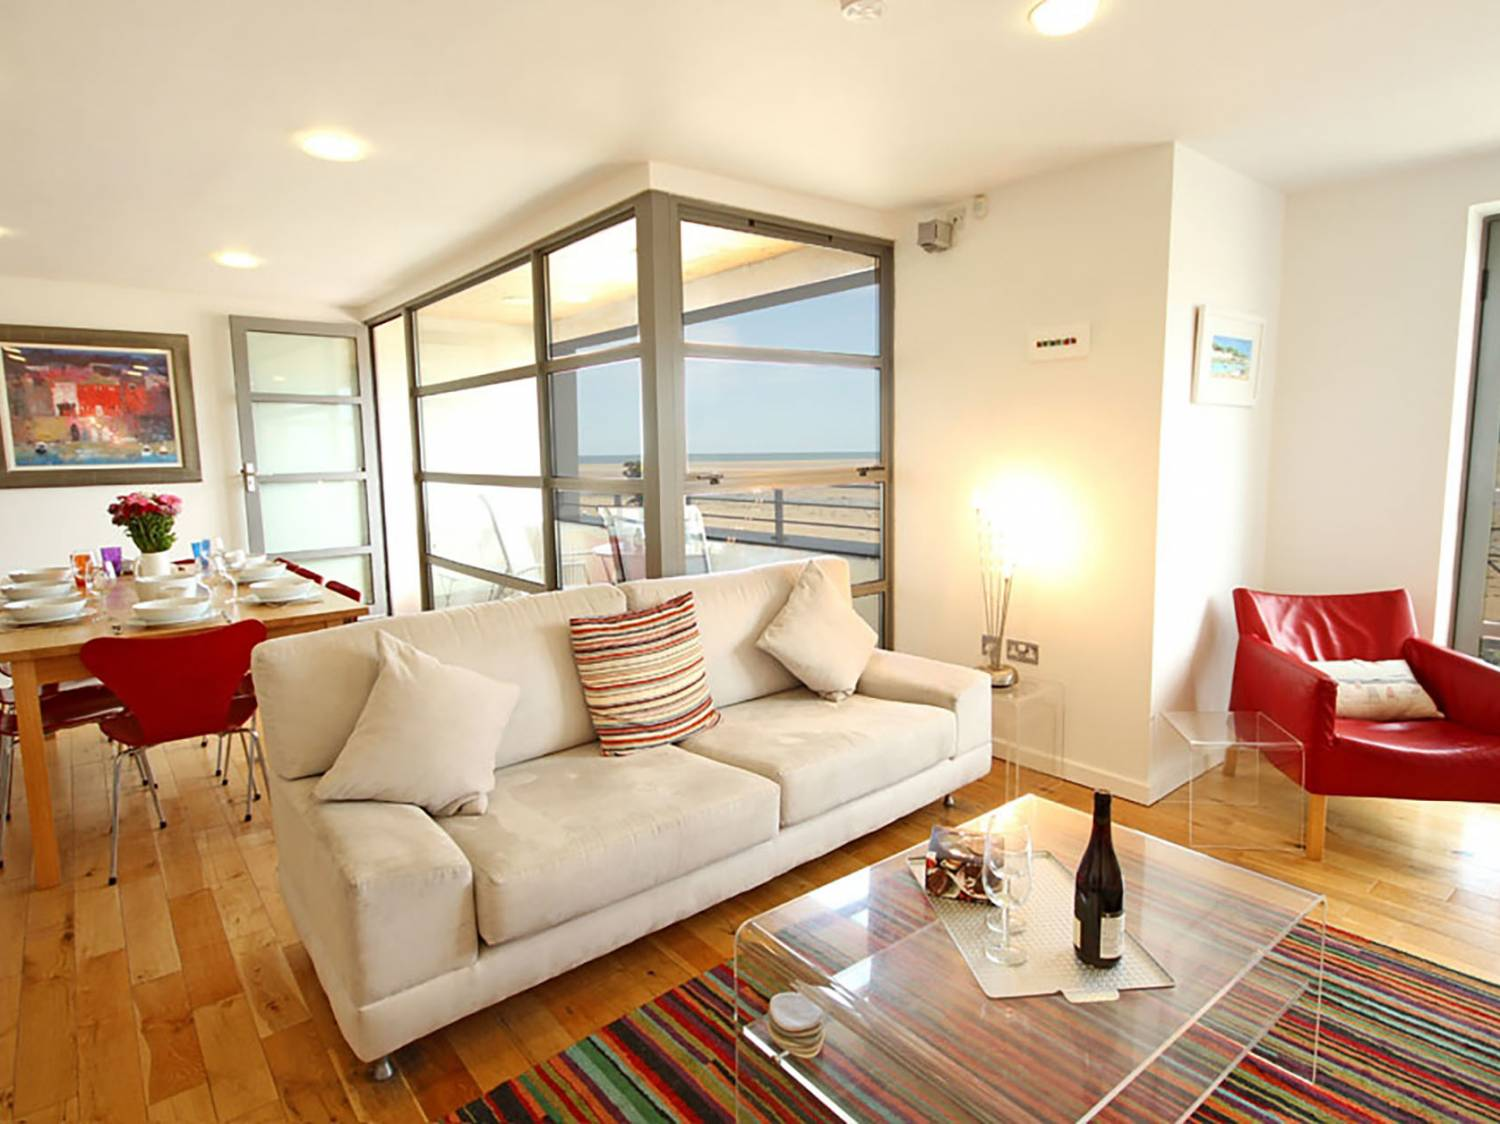 Four The Quay in Red Wharf Bay - sleeps 8 people